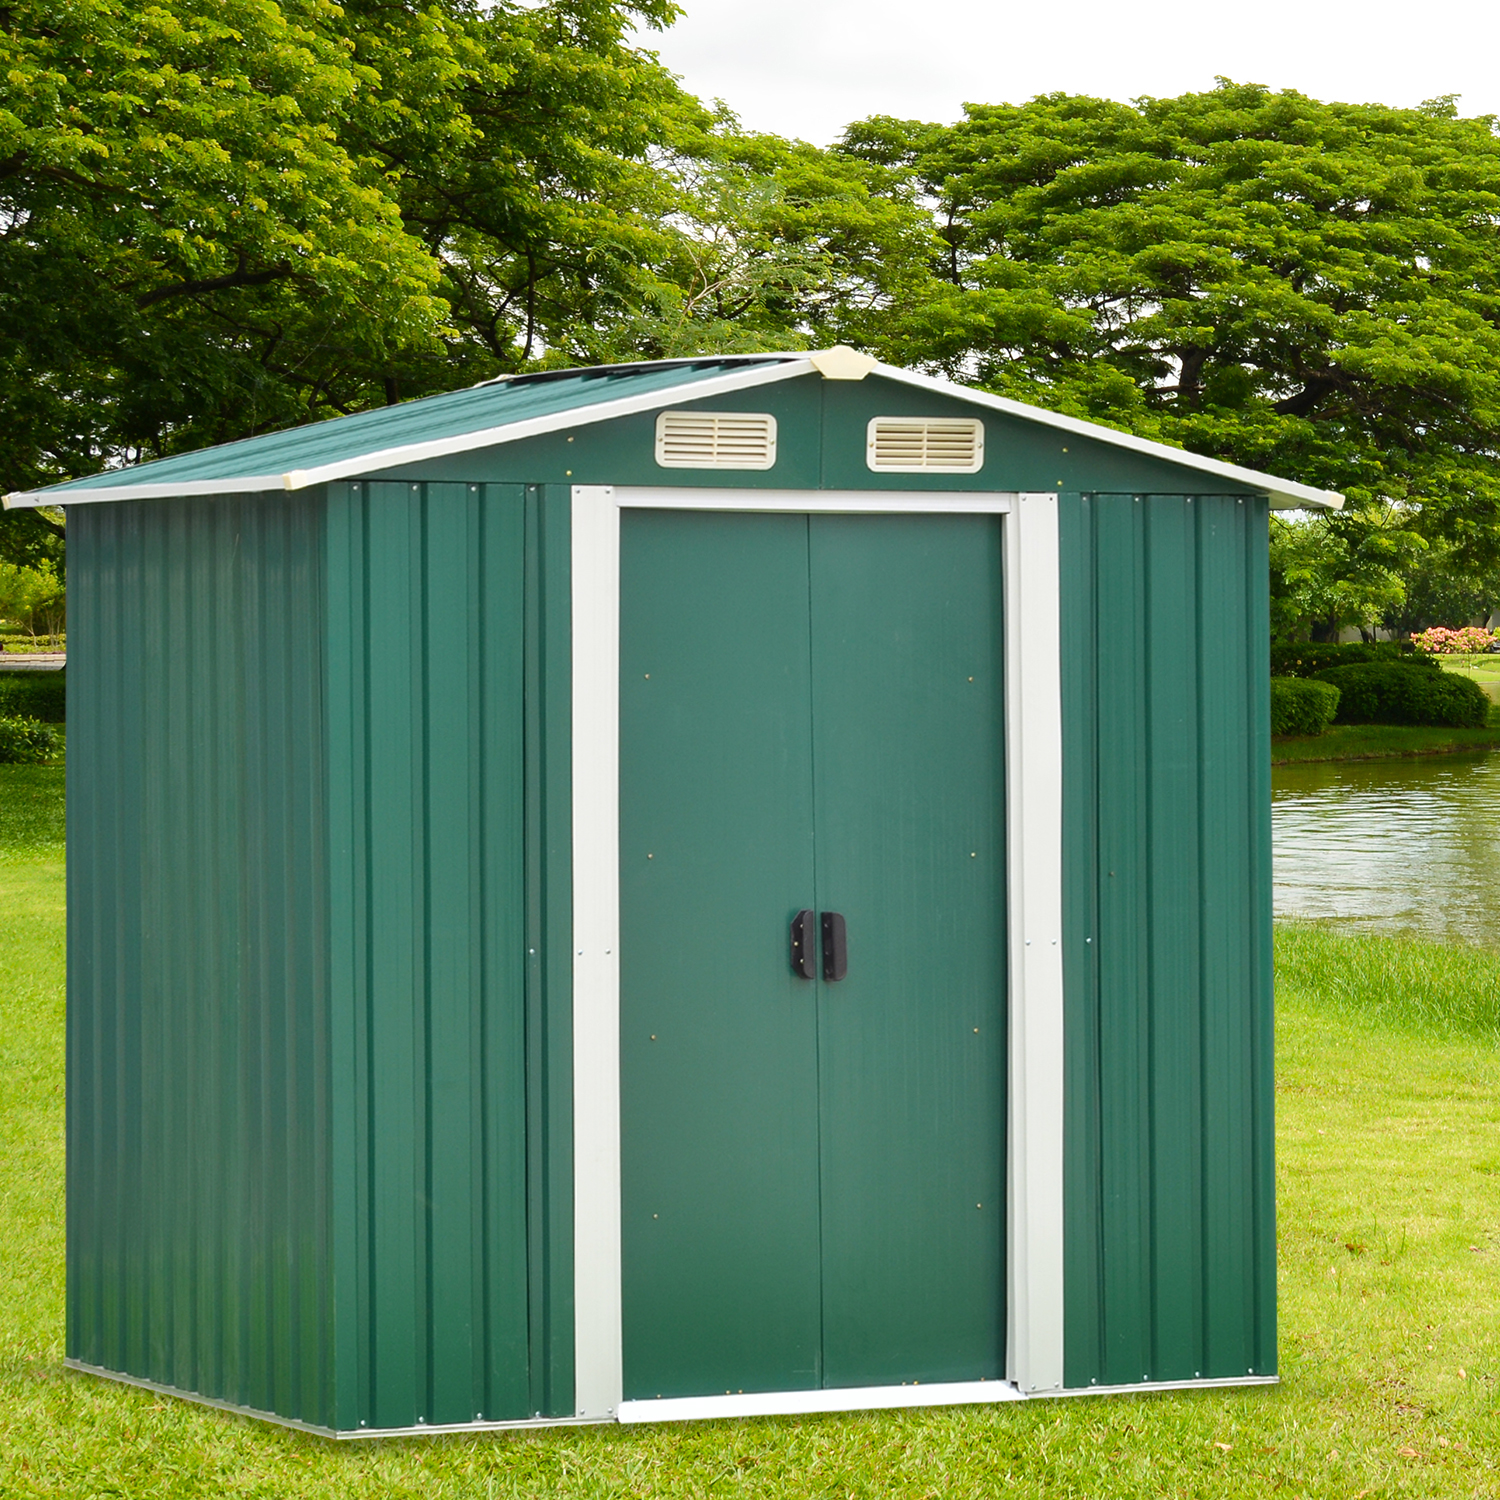 Kinbor 6' x 4' Outdoor Steel Garden Storage Utility Tool Shed Backyard Lawn Green w/Door